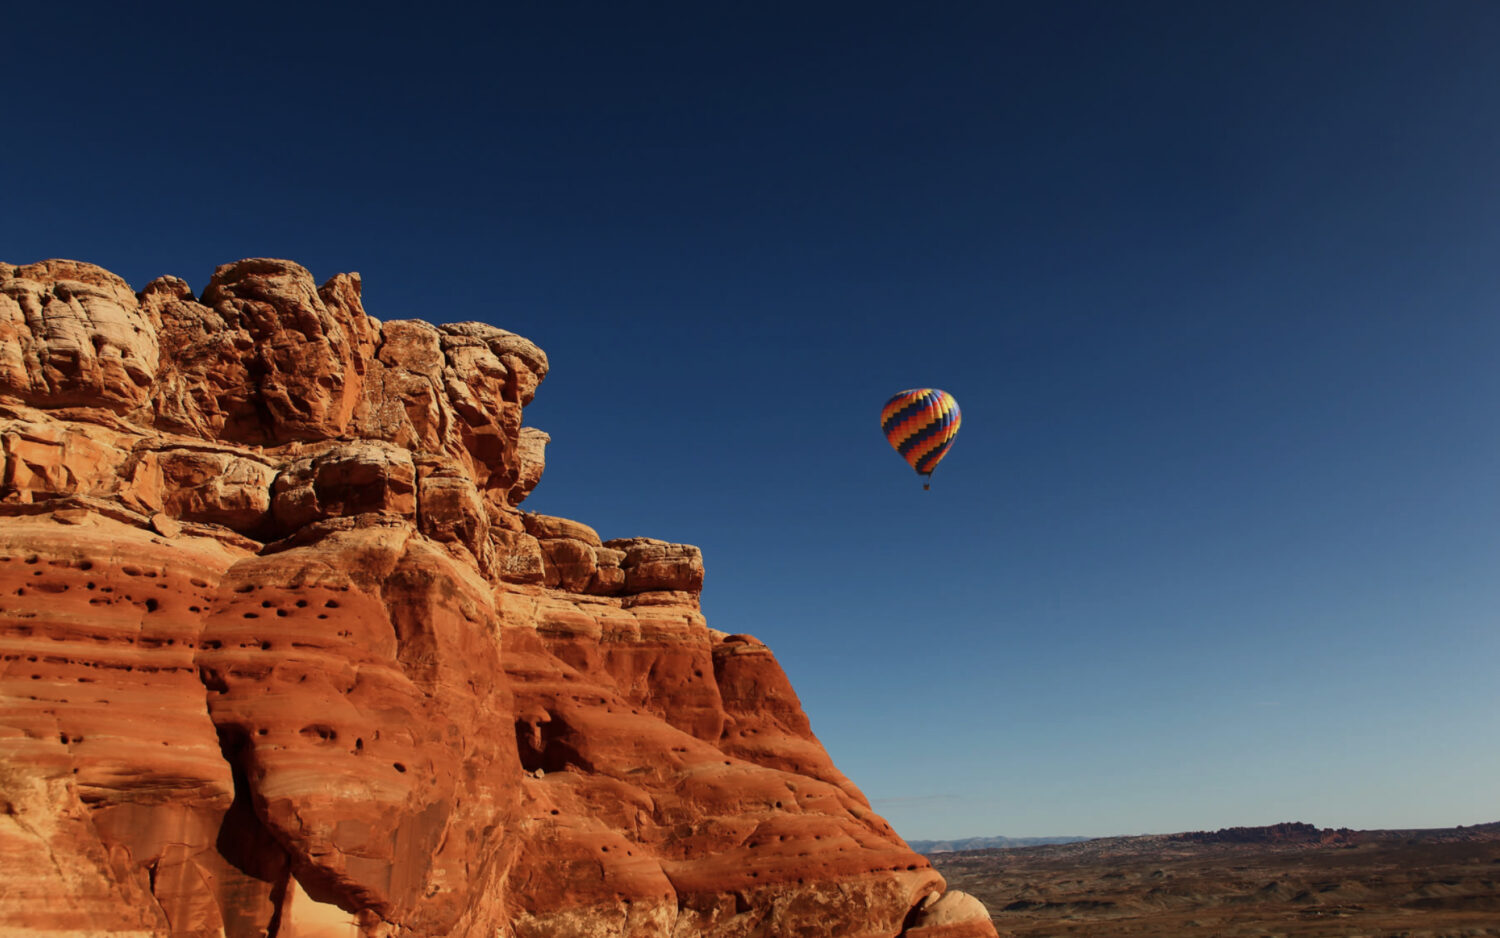 A hot air balloon floats past a high red cliff on a starry evening